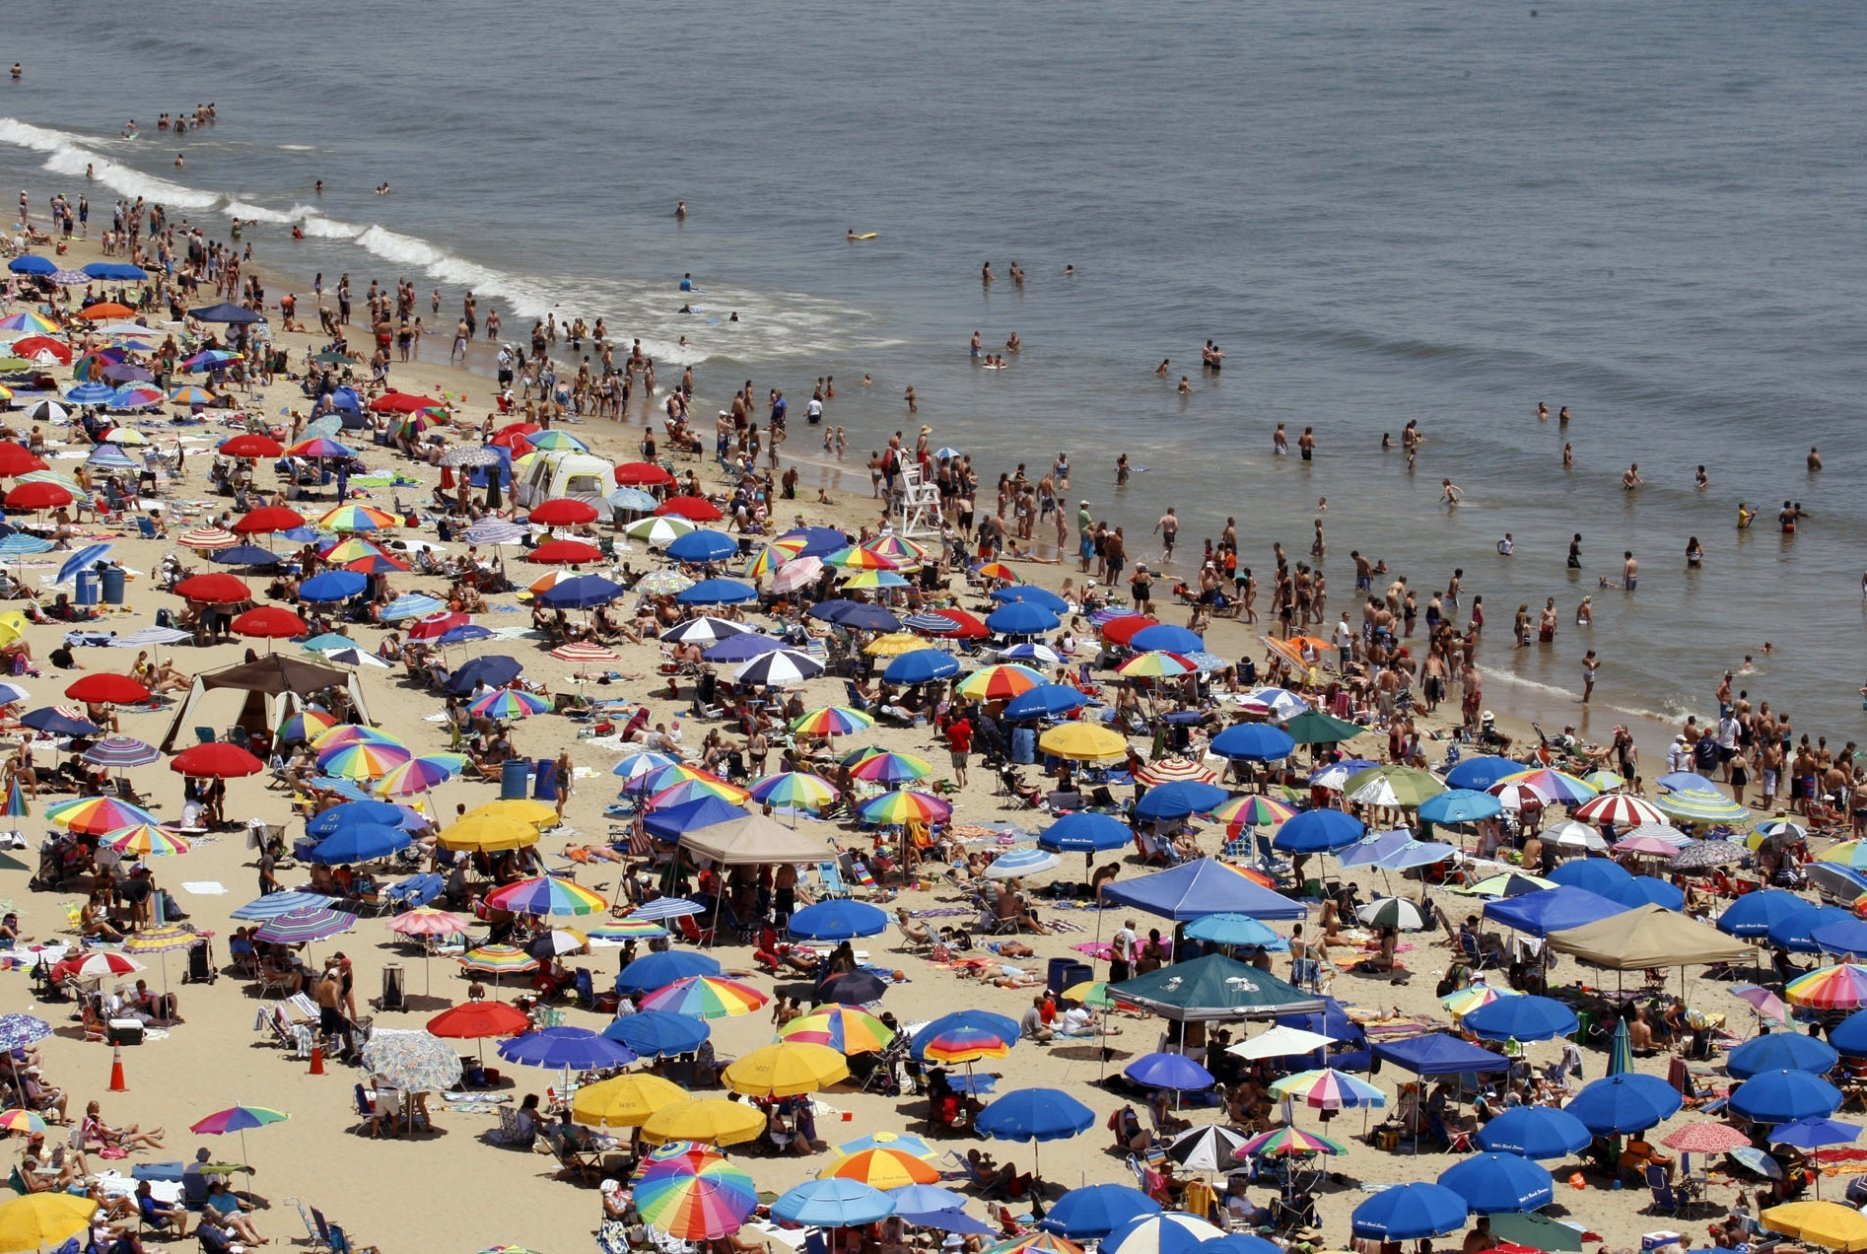 FILE - In this June 9, 2012, file photo, people crowd the beach in Ocean City, Md.  (Amanda Rippen White/The News Journal via AP, File)